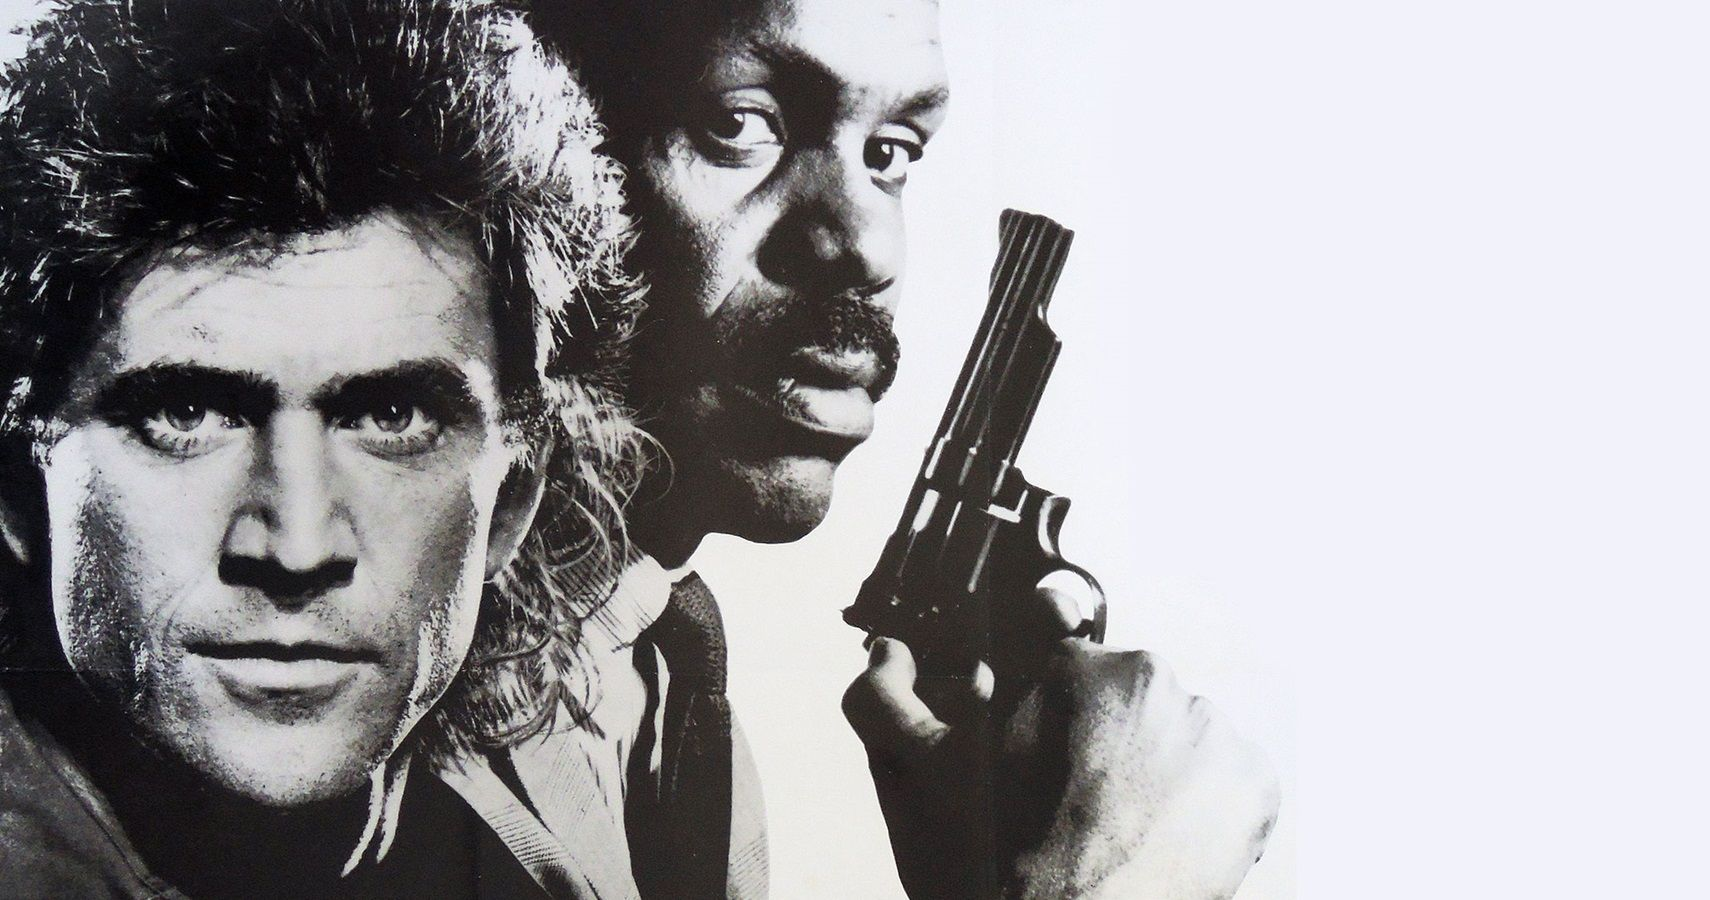 10 Best Martin Riggs Quotes In The Lethal Weapon Movies